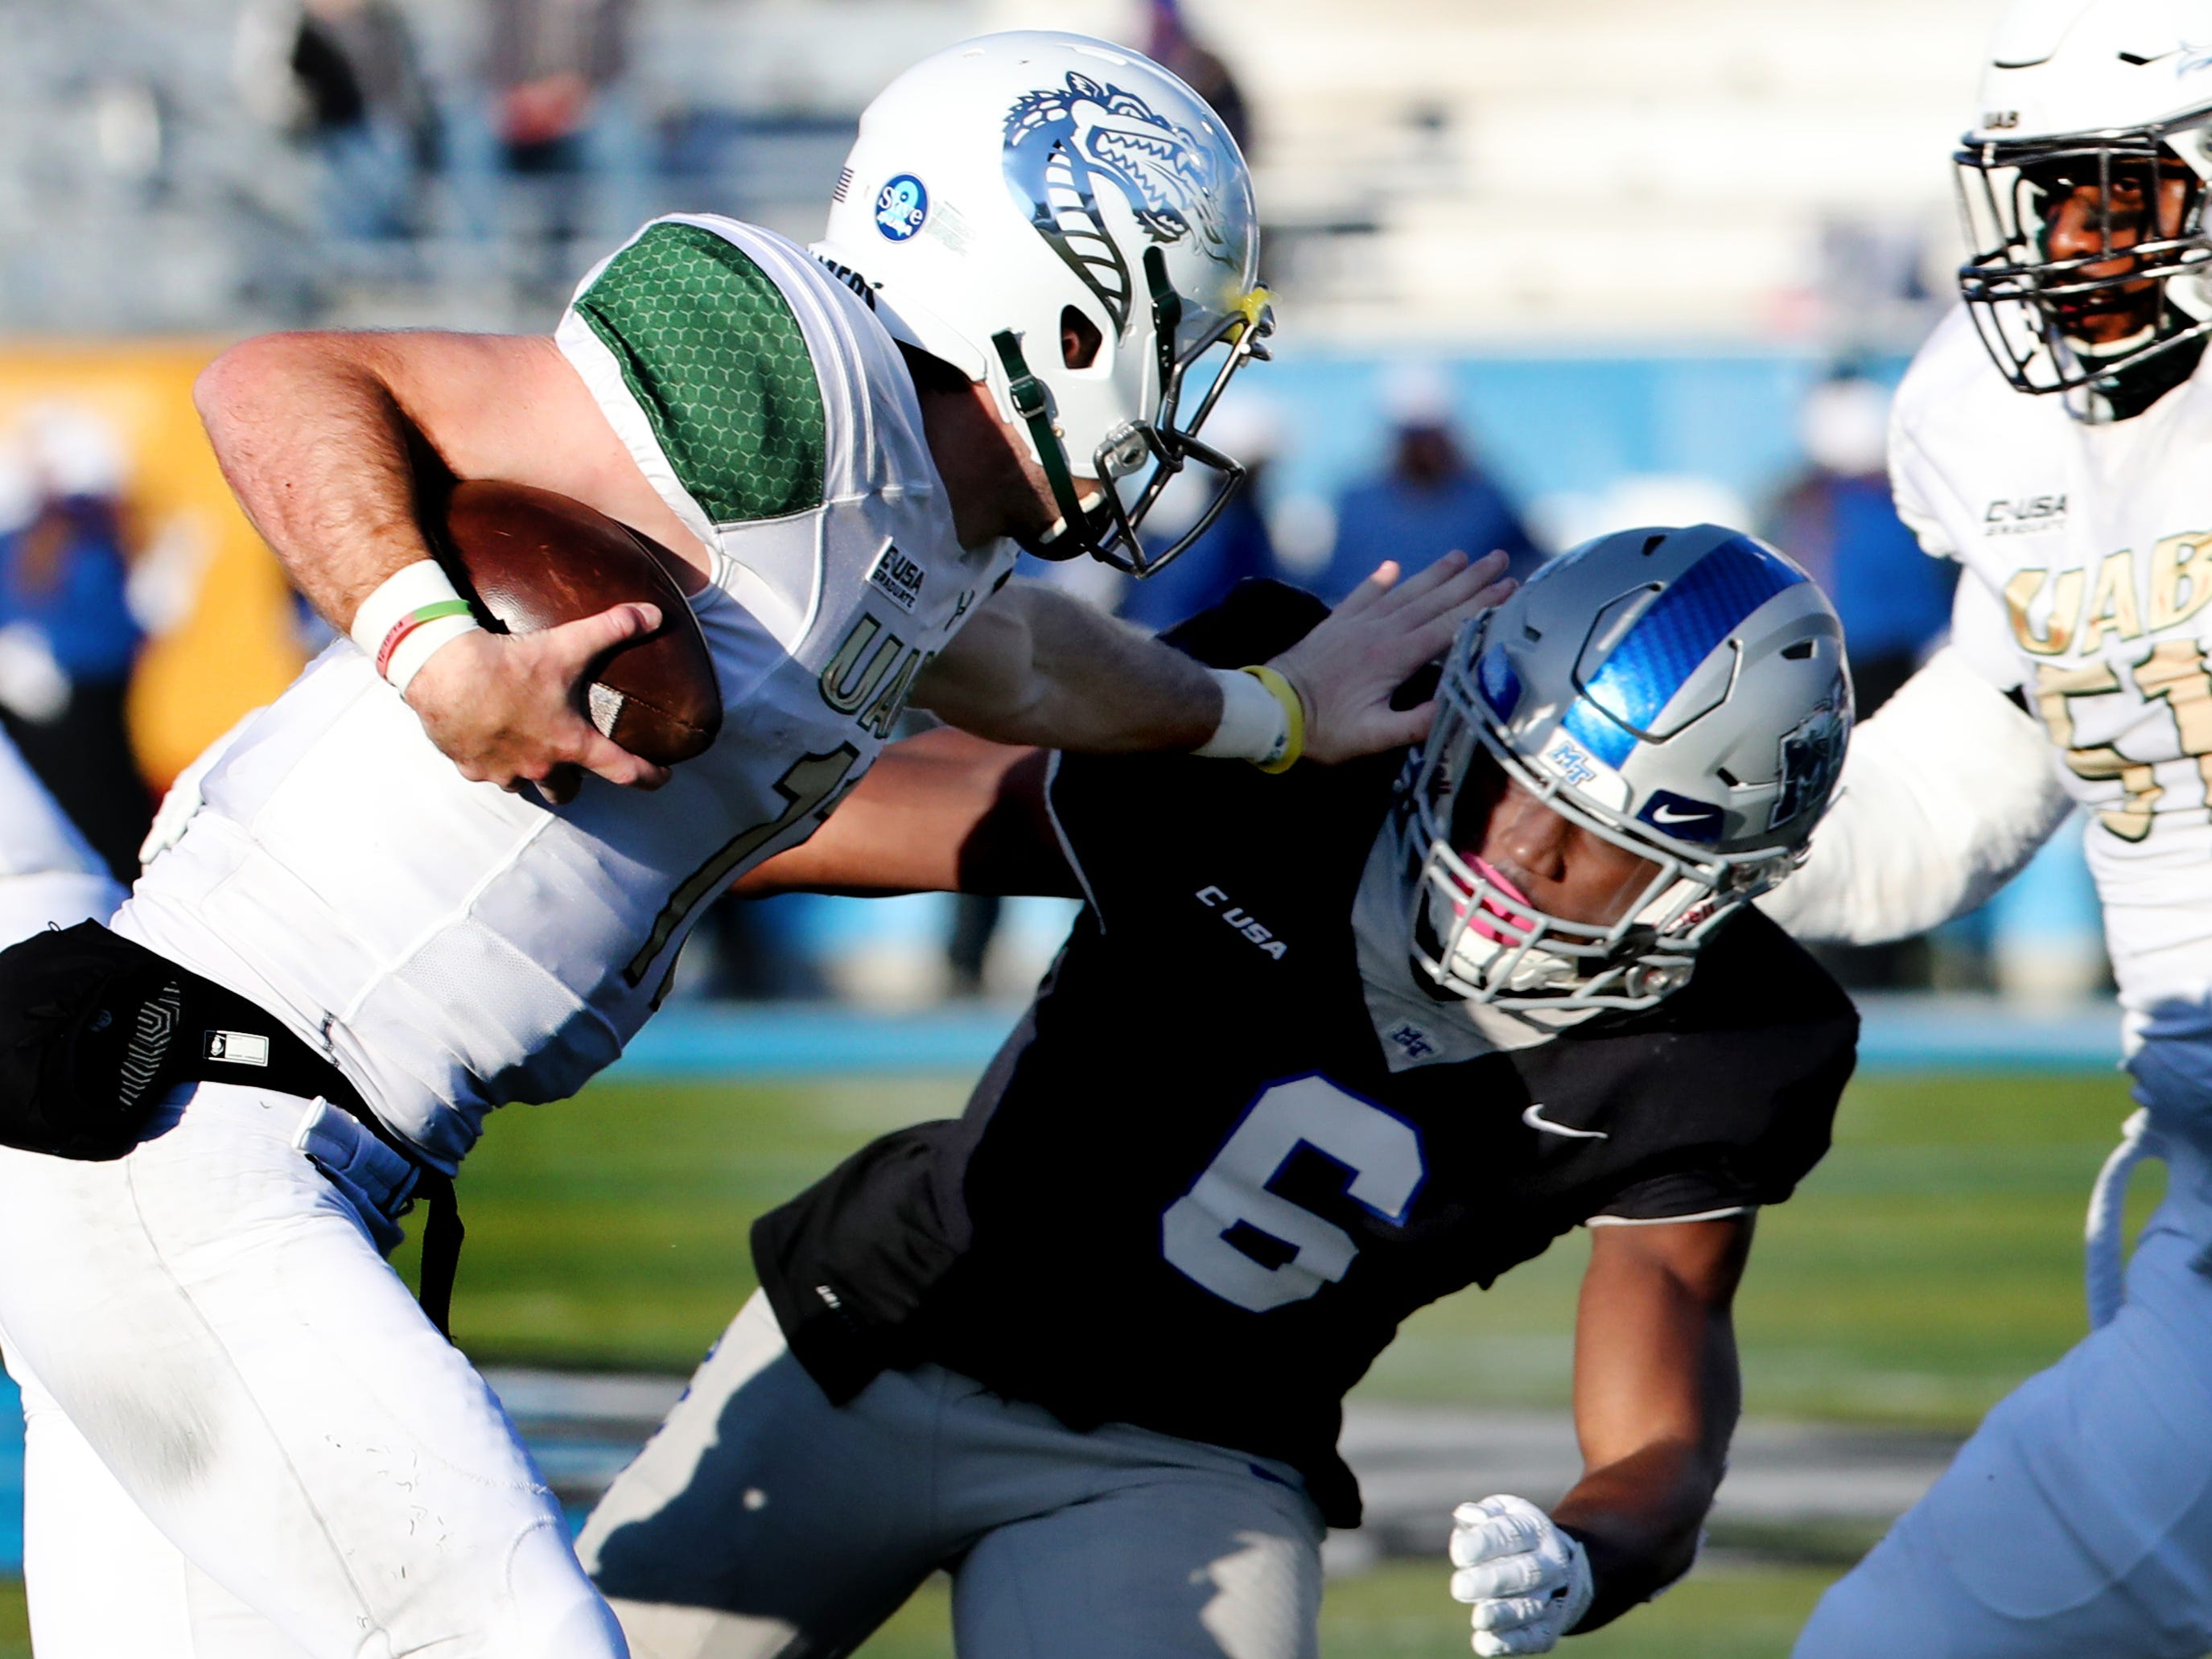 MTSU's Khalil Brooks (6) moves in to tackle UAB's quarterback AJ Erdely (11) during the game at MTSU on Saturday, Nov. 24, 2018.